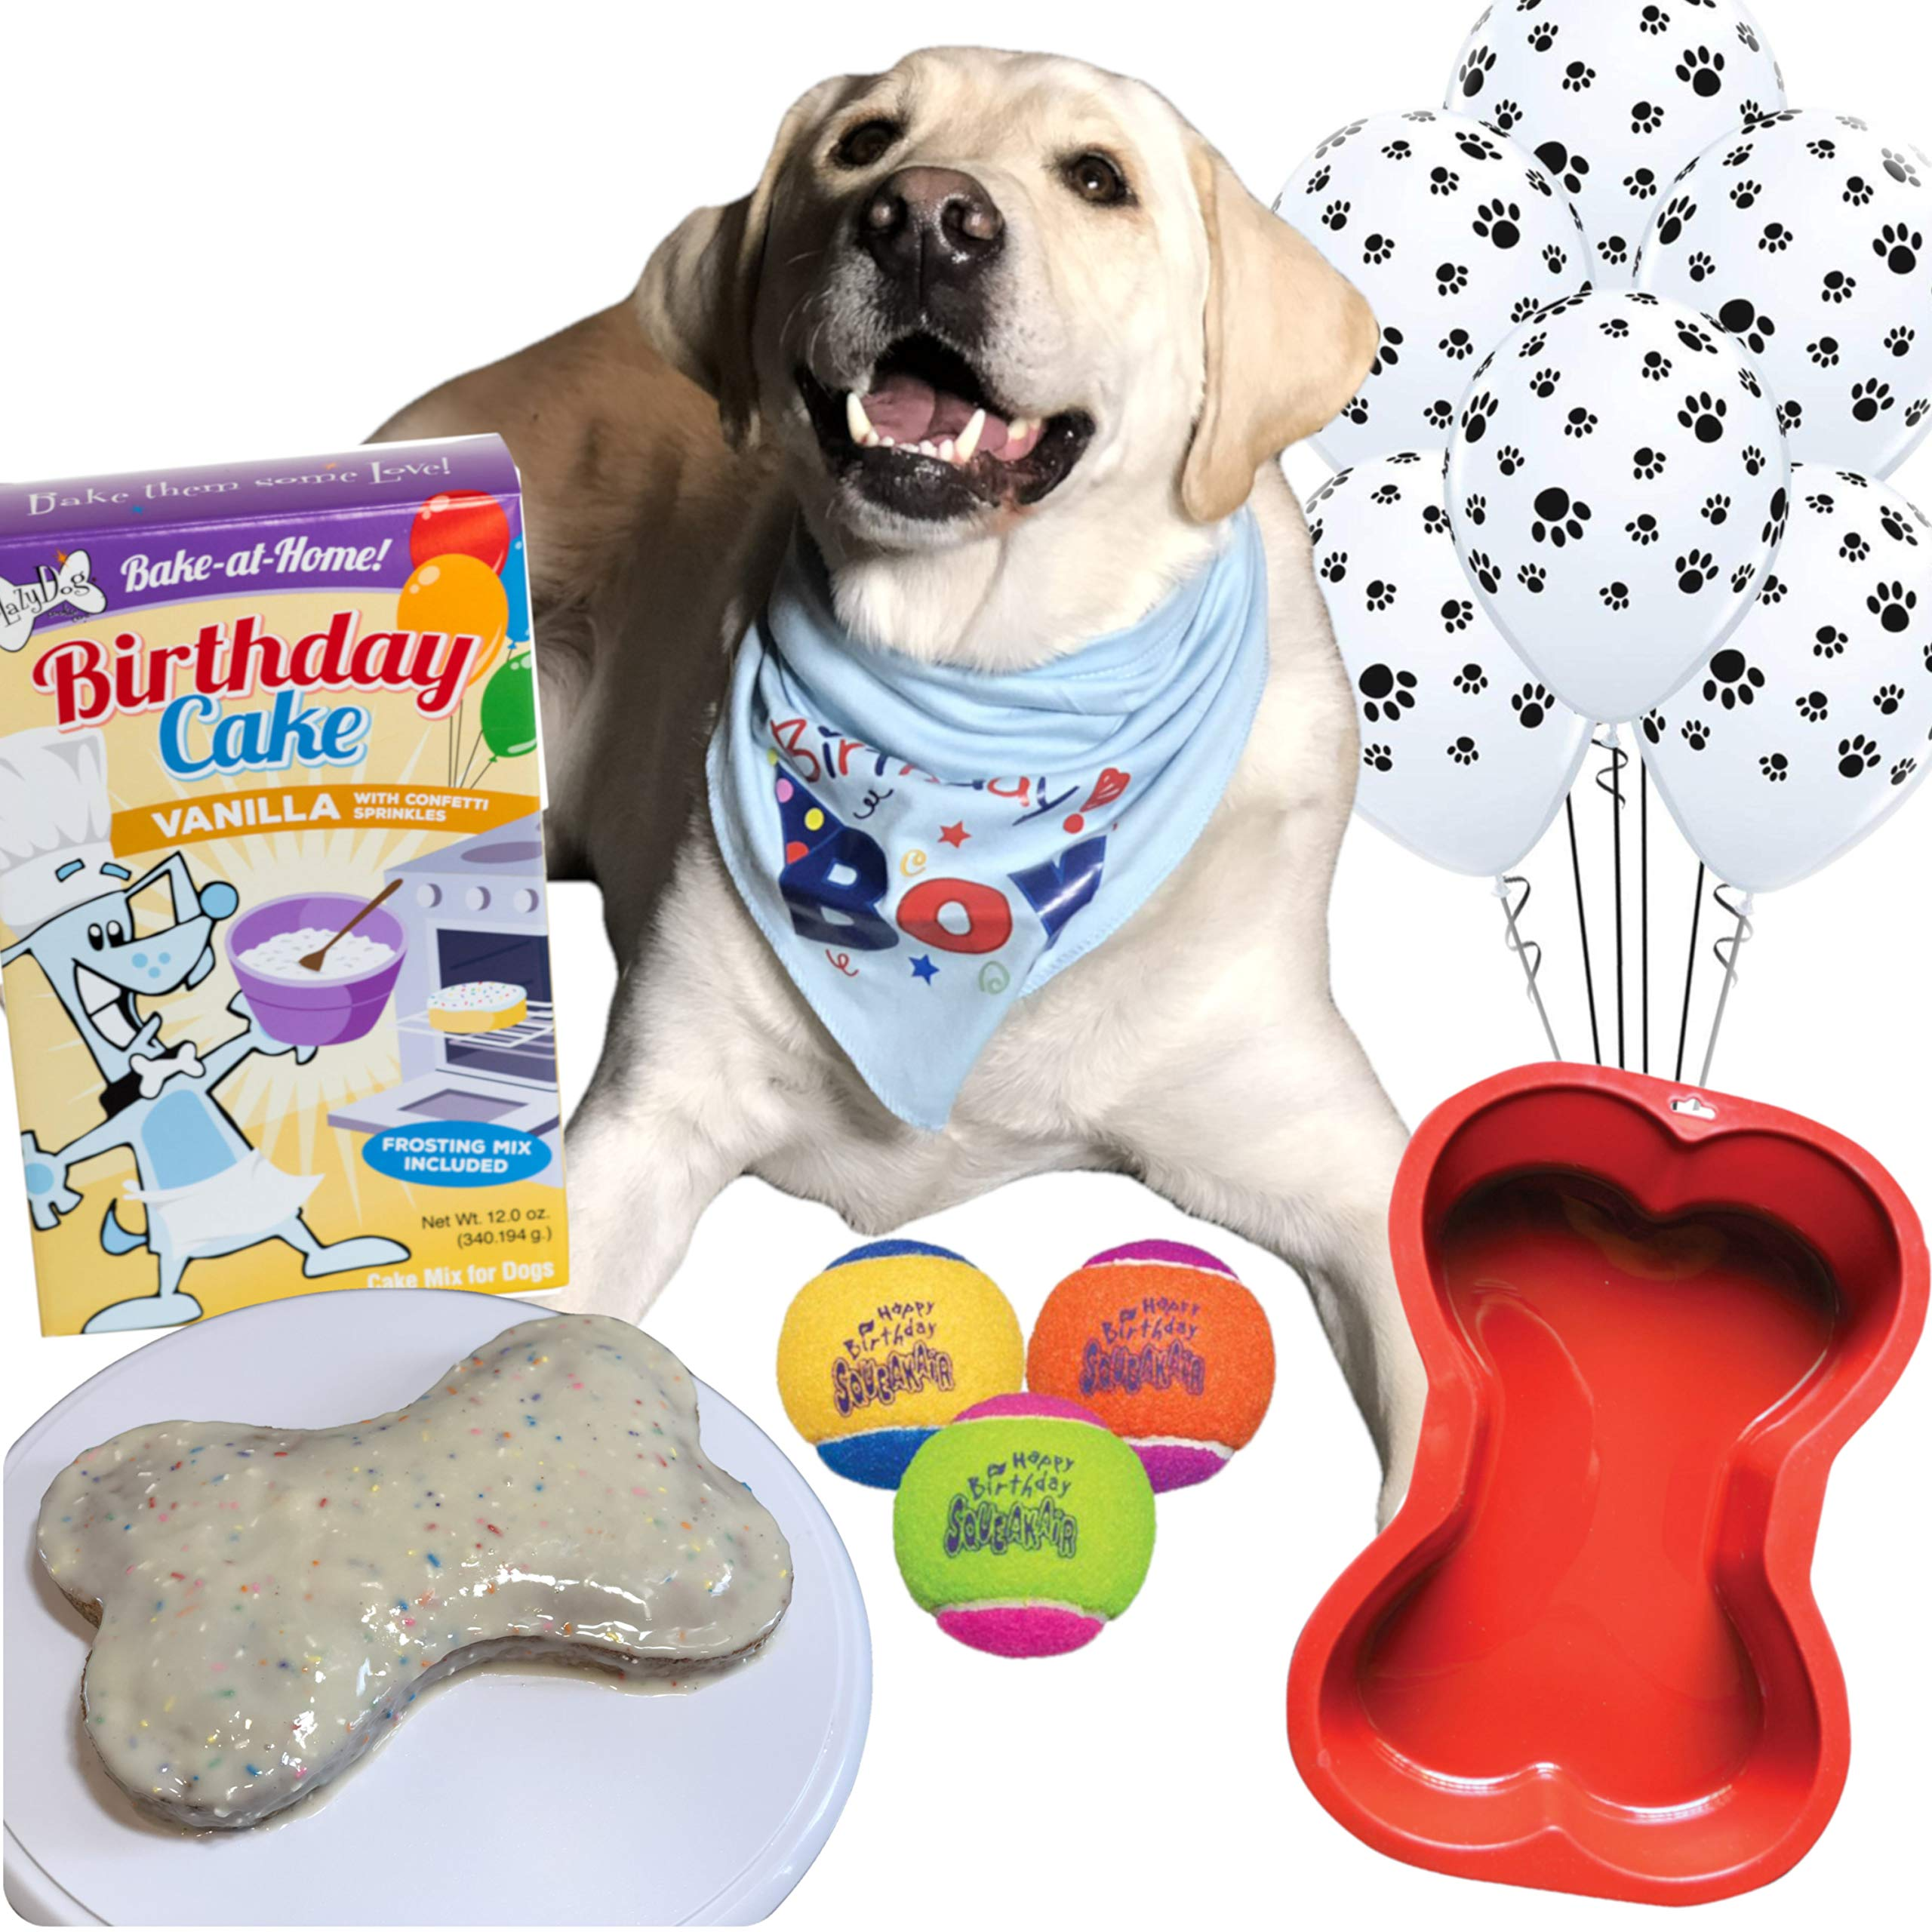 Dog Birthday Cake Mix and Frosting With Reusable Silicone Bone Cakes Baking Pan | 100% Natural Puppy Cake Mix | 6 Paw Print Balloons, Blue Happy Birthday Dog Bandana and 3 Toy Squeaky Birthday Balls by Giant Dog Paws (Image #1)